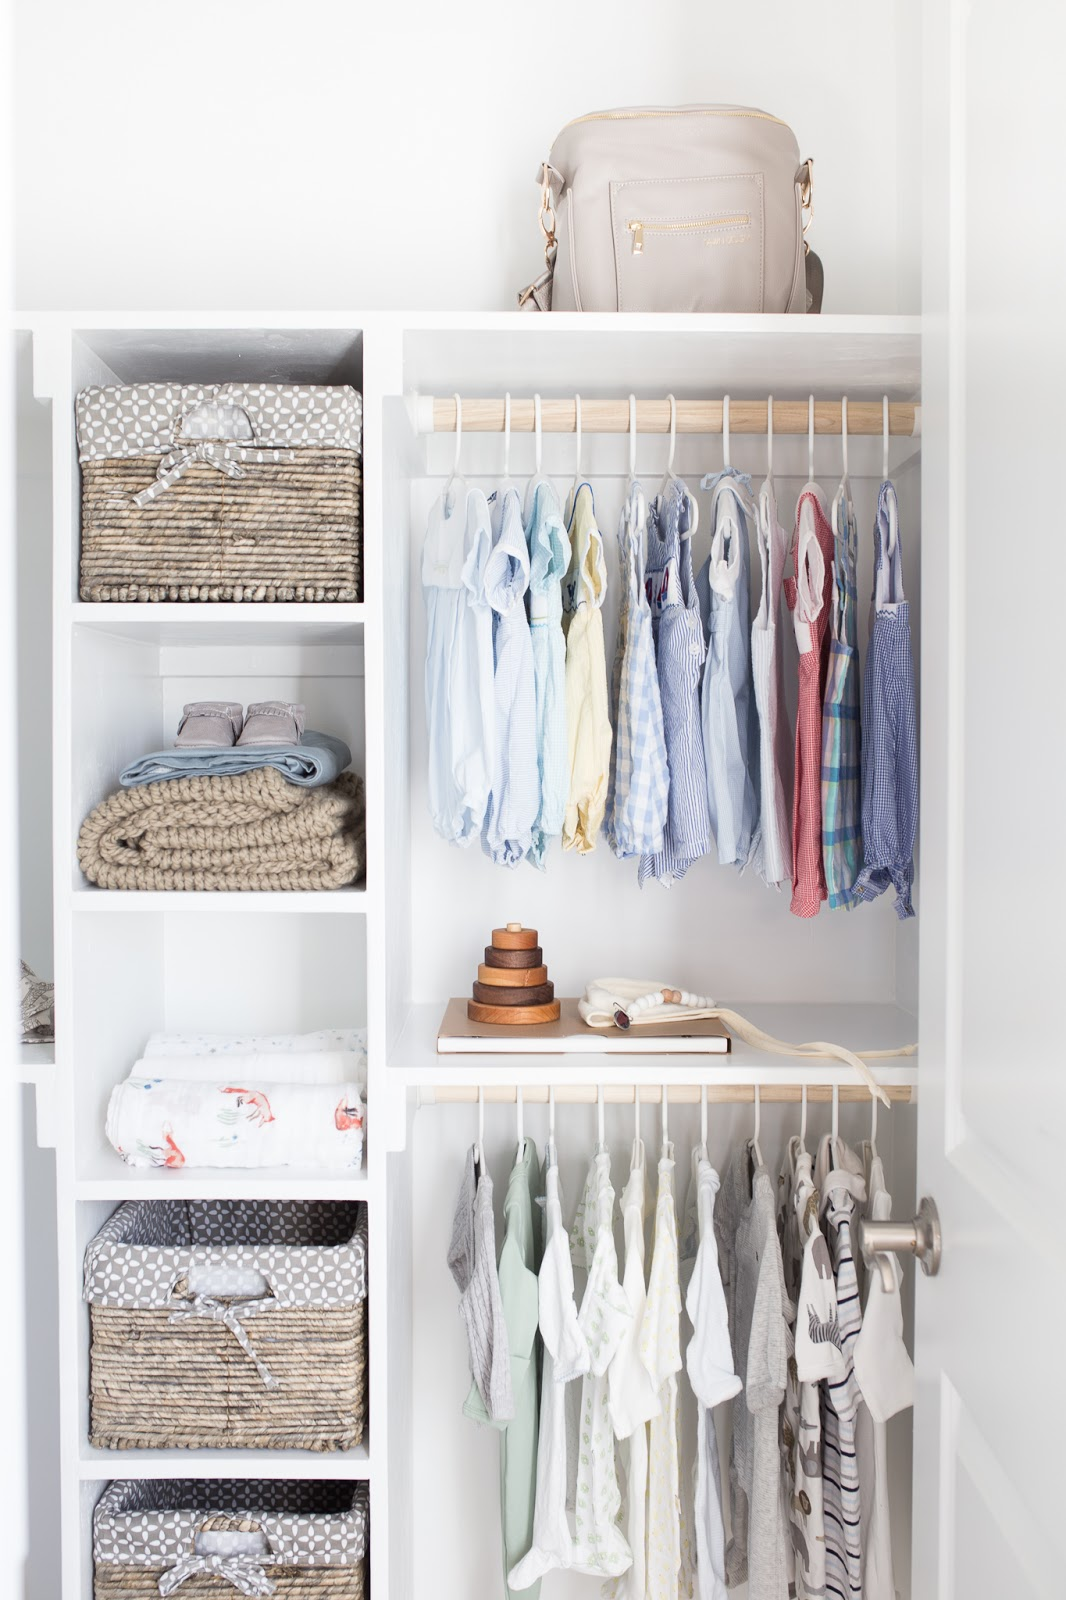 organization amazing before for the nursery header news closet diy small reveal blogs baby room from after bubzi a co ideas